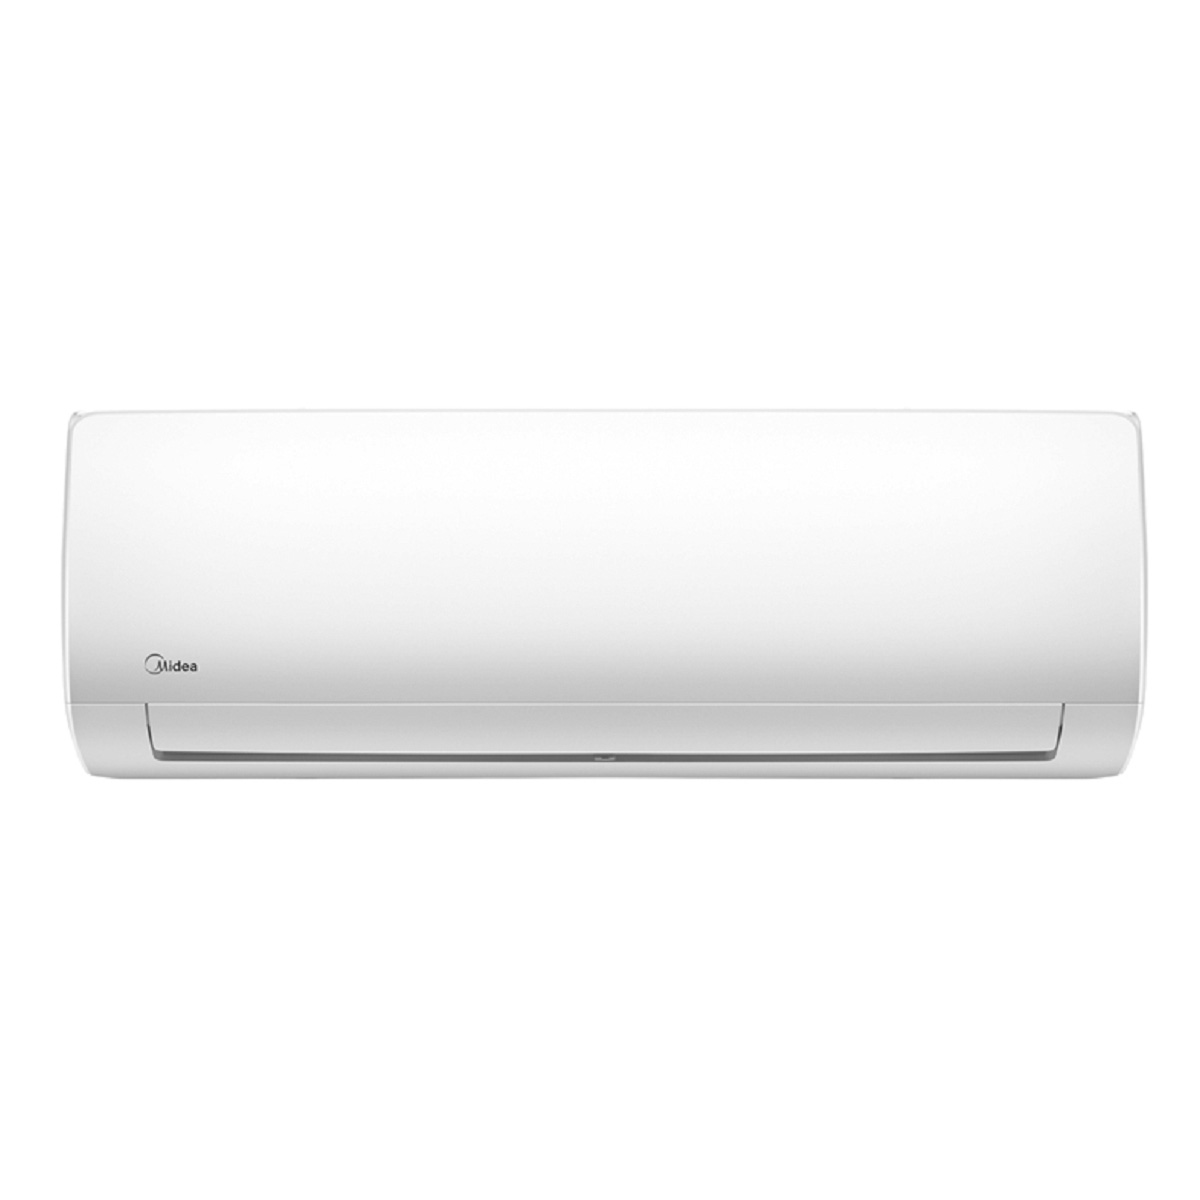 Midea MIS35 3.7kW Wi-Fi Inverter Split System Air Conditioner